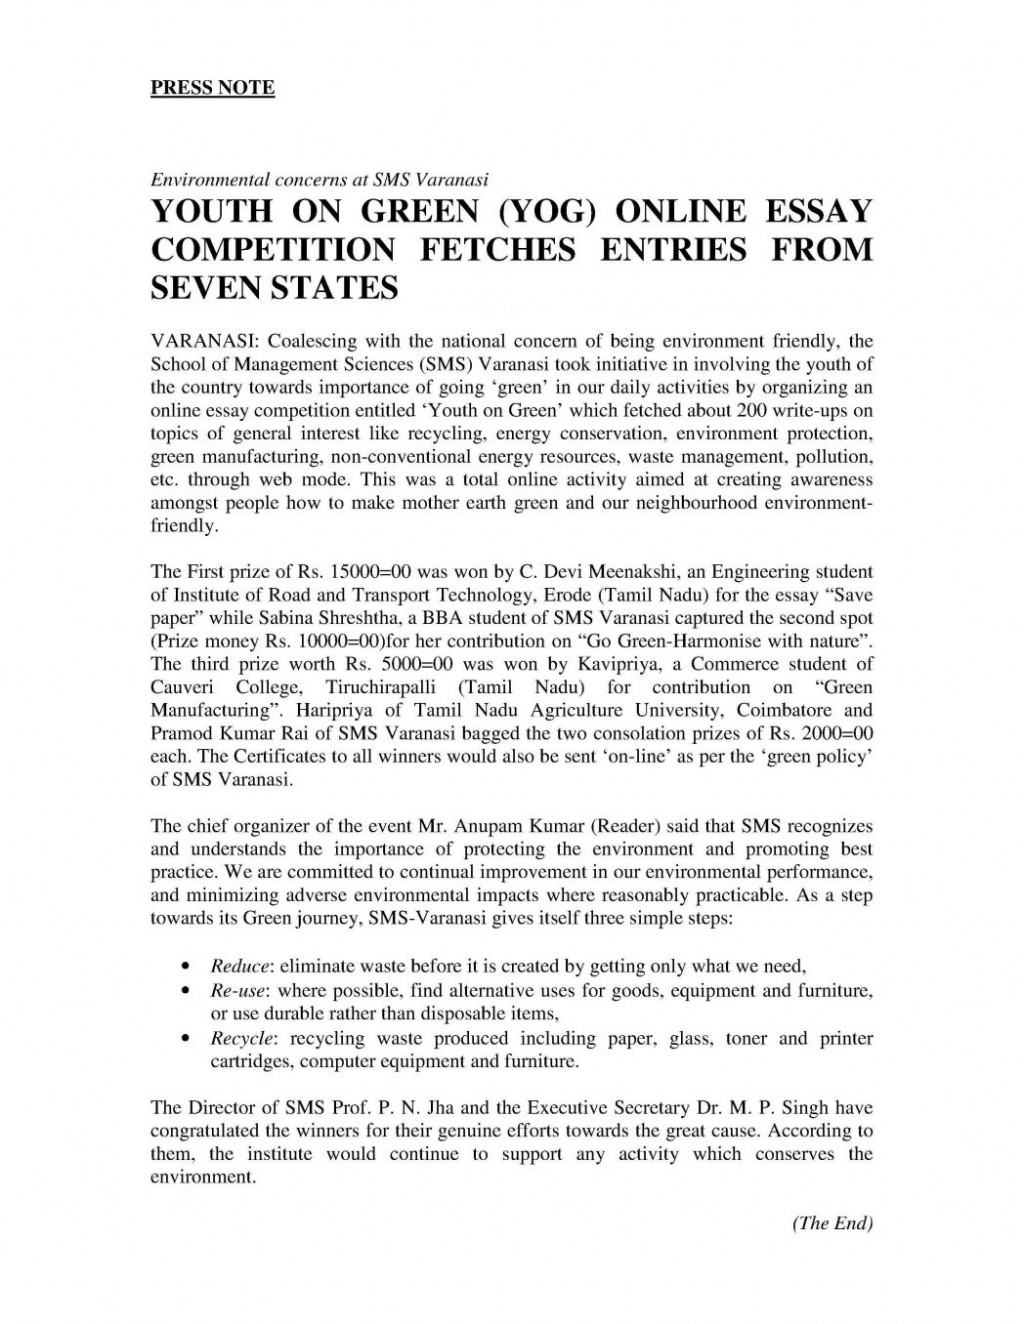 020 Best Essays For College Essay On Good Habits How Tot Application Online Yog Press Re About Yourself Examples Your Background Failure Prompt Off Hook 1048x1356 Example Amazing To Start An Analysis A Book Ways With Question Two Books Large